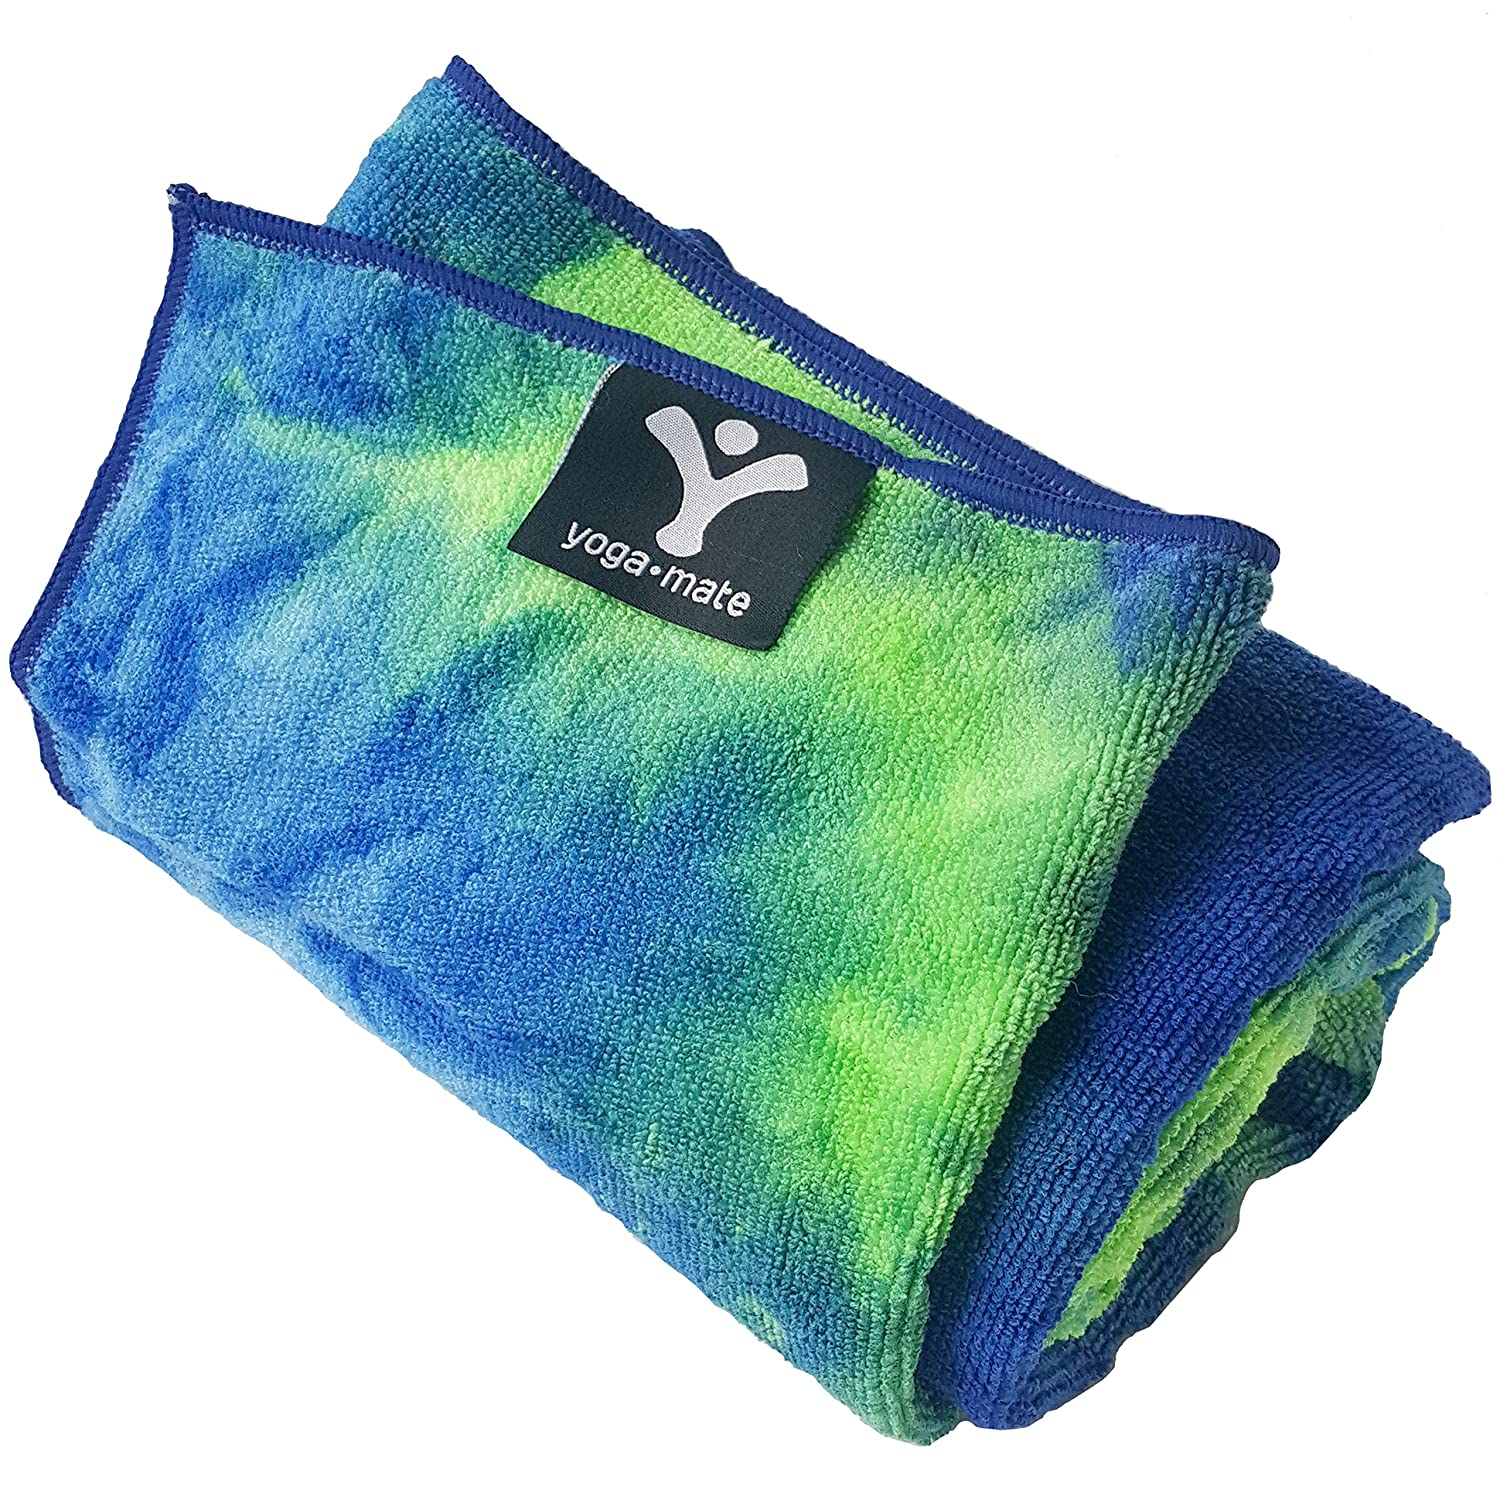 Yoga Mate Perfect Yoga Towel Super Soft Sweat Absorbent Non Slip Bikram Hot Yoga Towels | Perfect Size For Mat Ideal For Hot Yoga Pilates